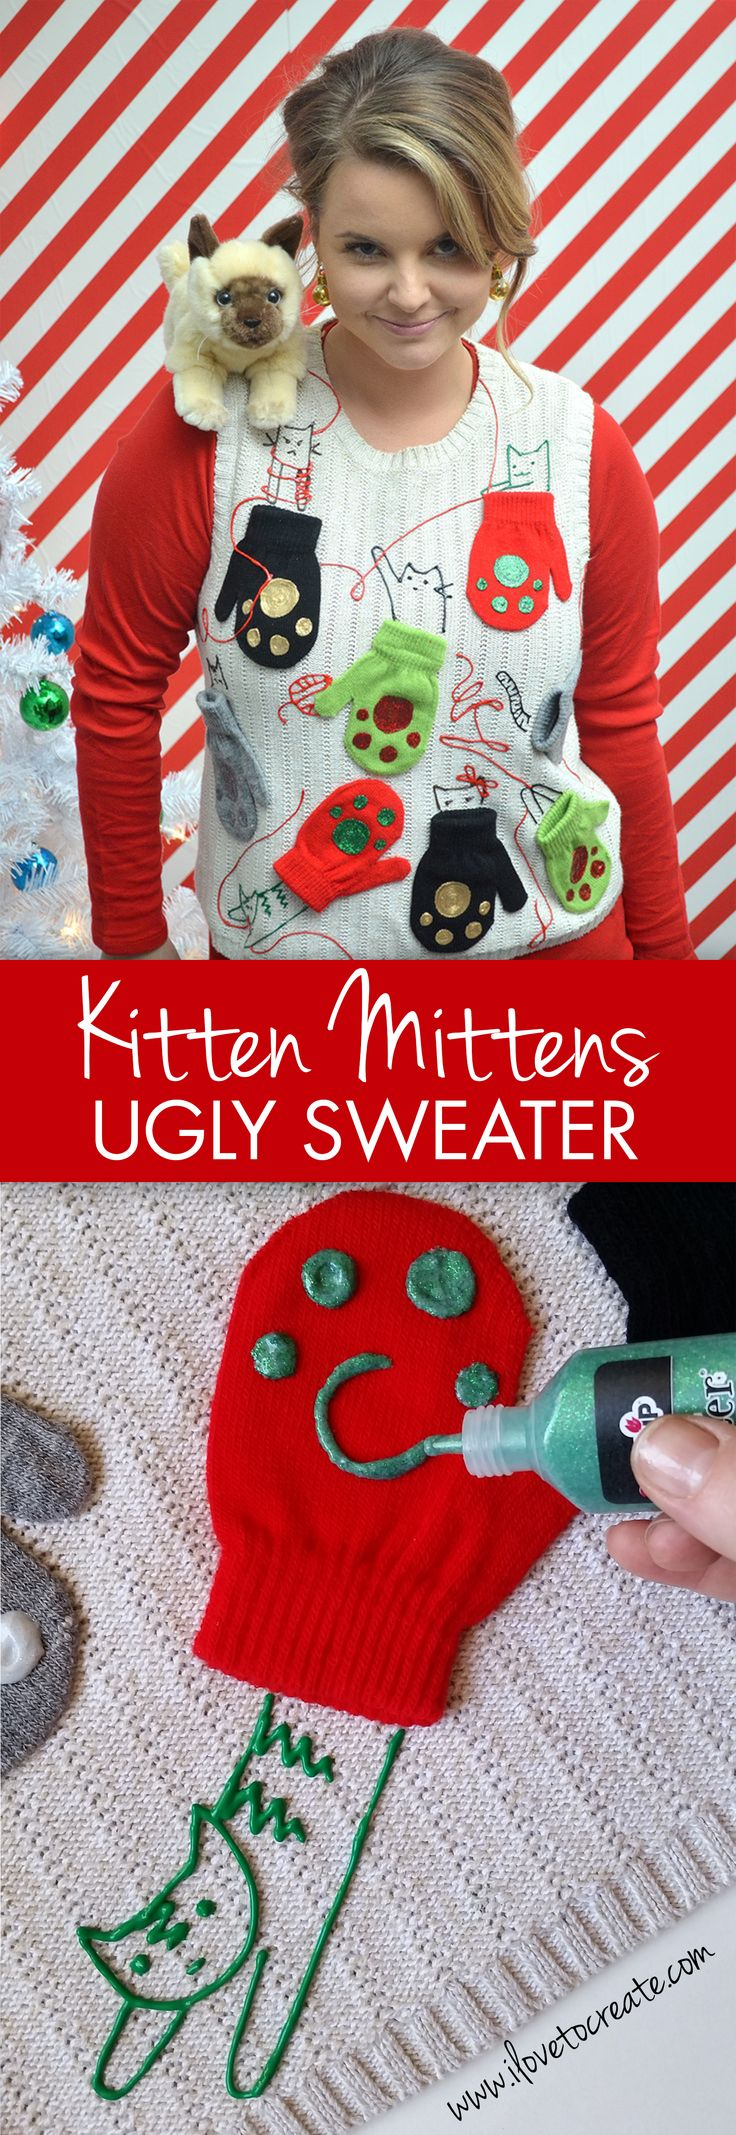 50 best ugly christmas sweater diy images on pinterest ugly make your own kitten mittens ugly sweater for your ugly sweater holiday party a great diy solutioingenieria Images